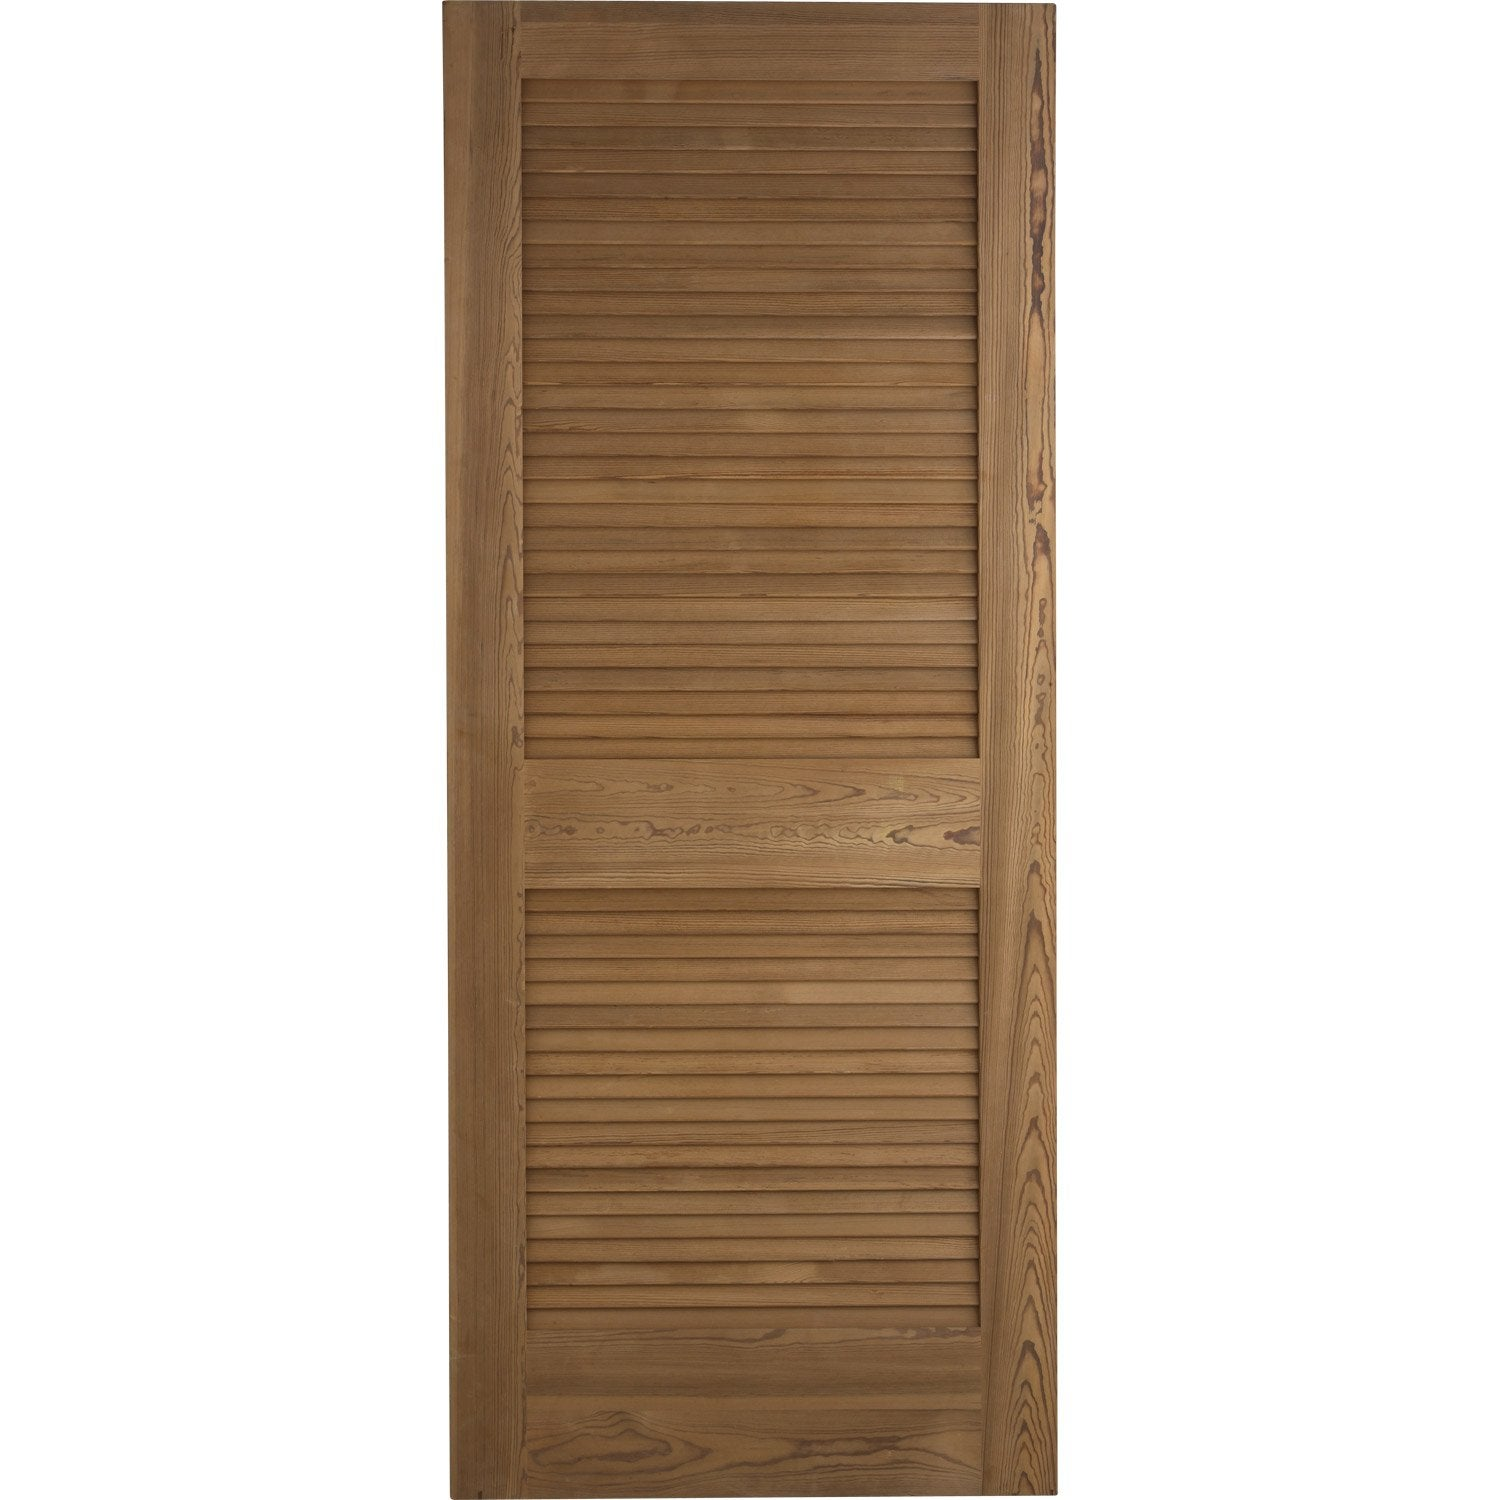 Porte coulissante pin plaqu marron java artens 204 x 73 for Meuble salle de bain porte persienne